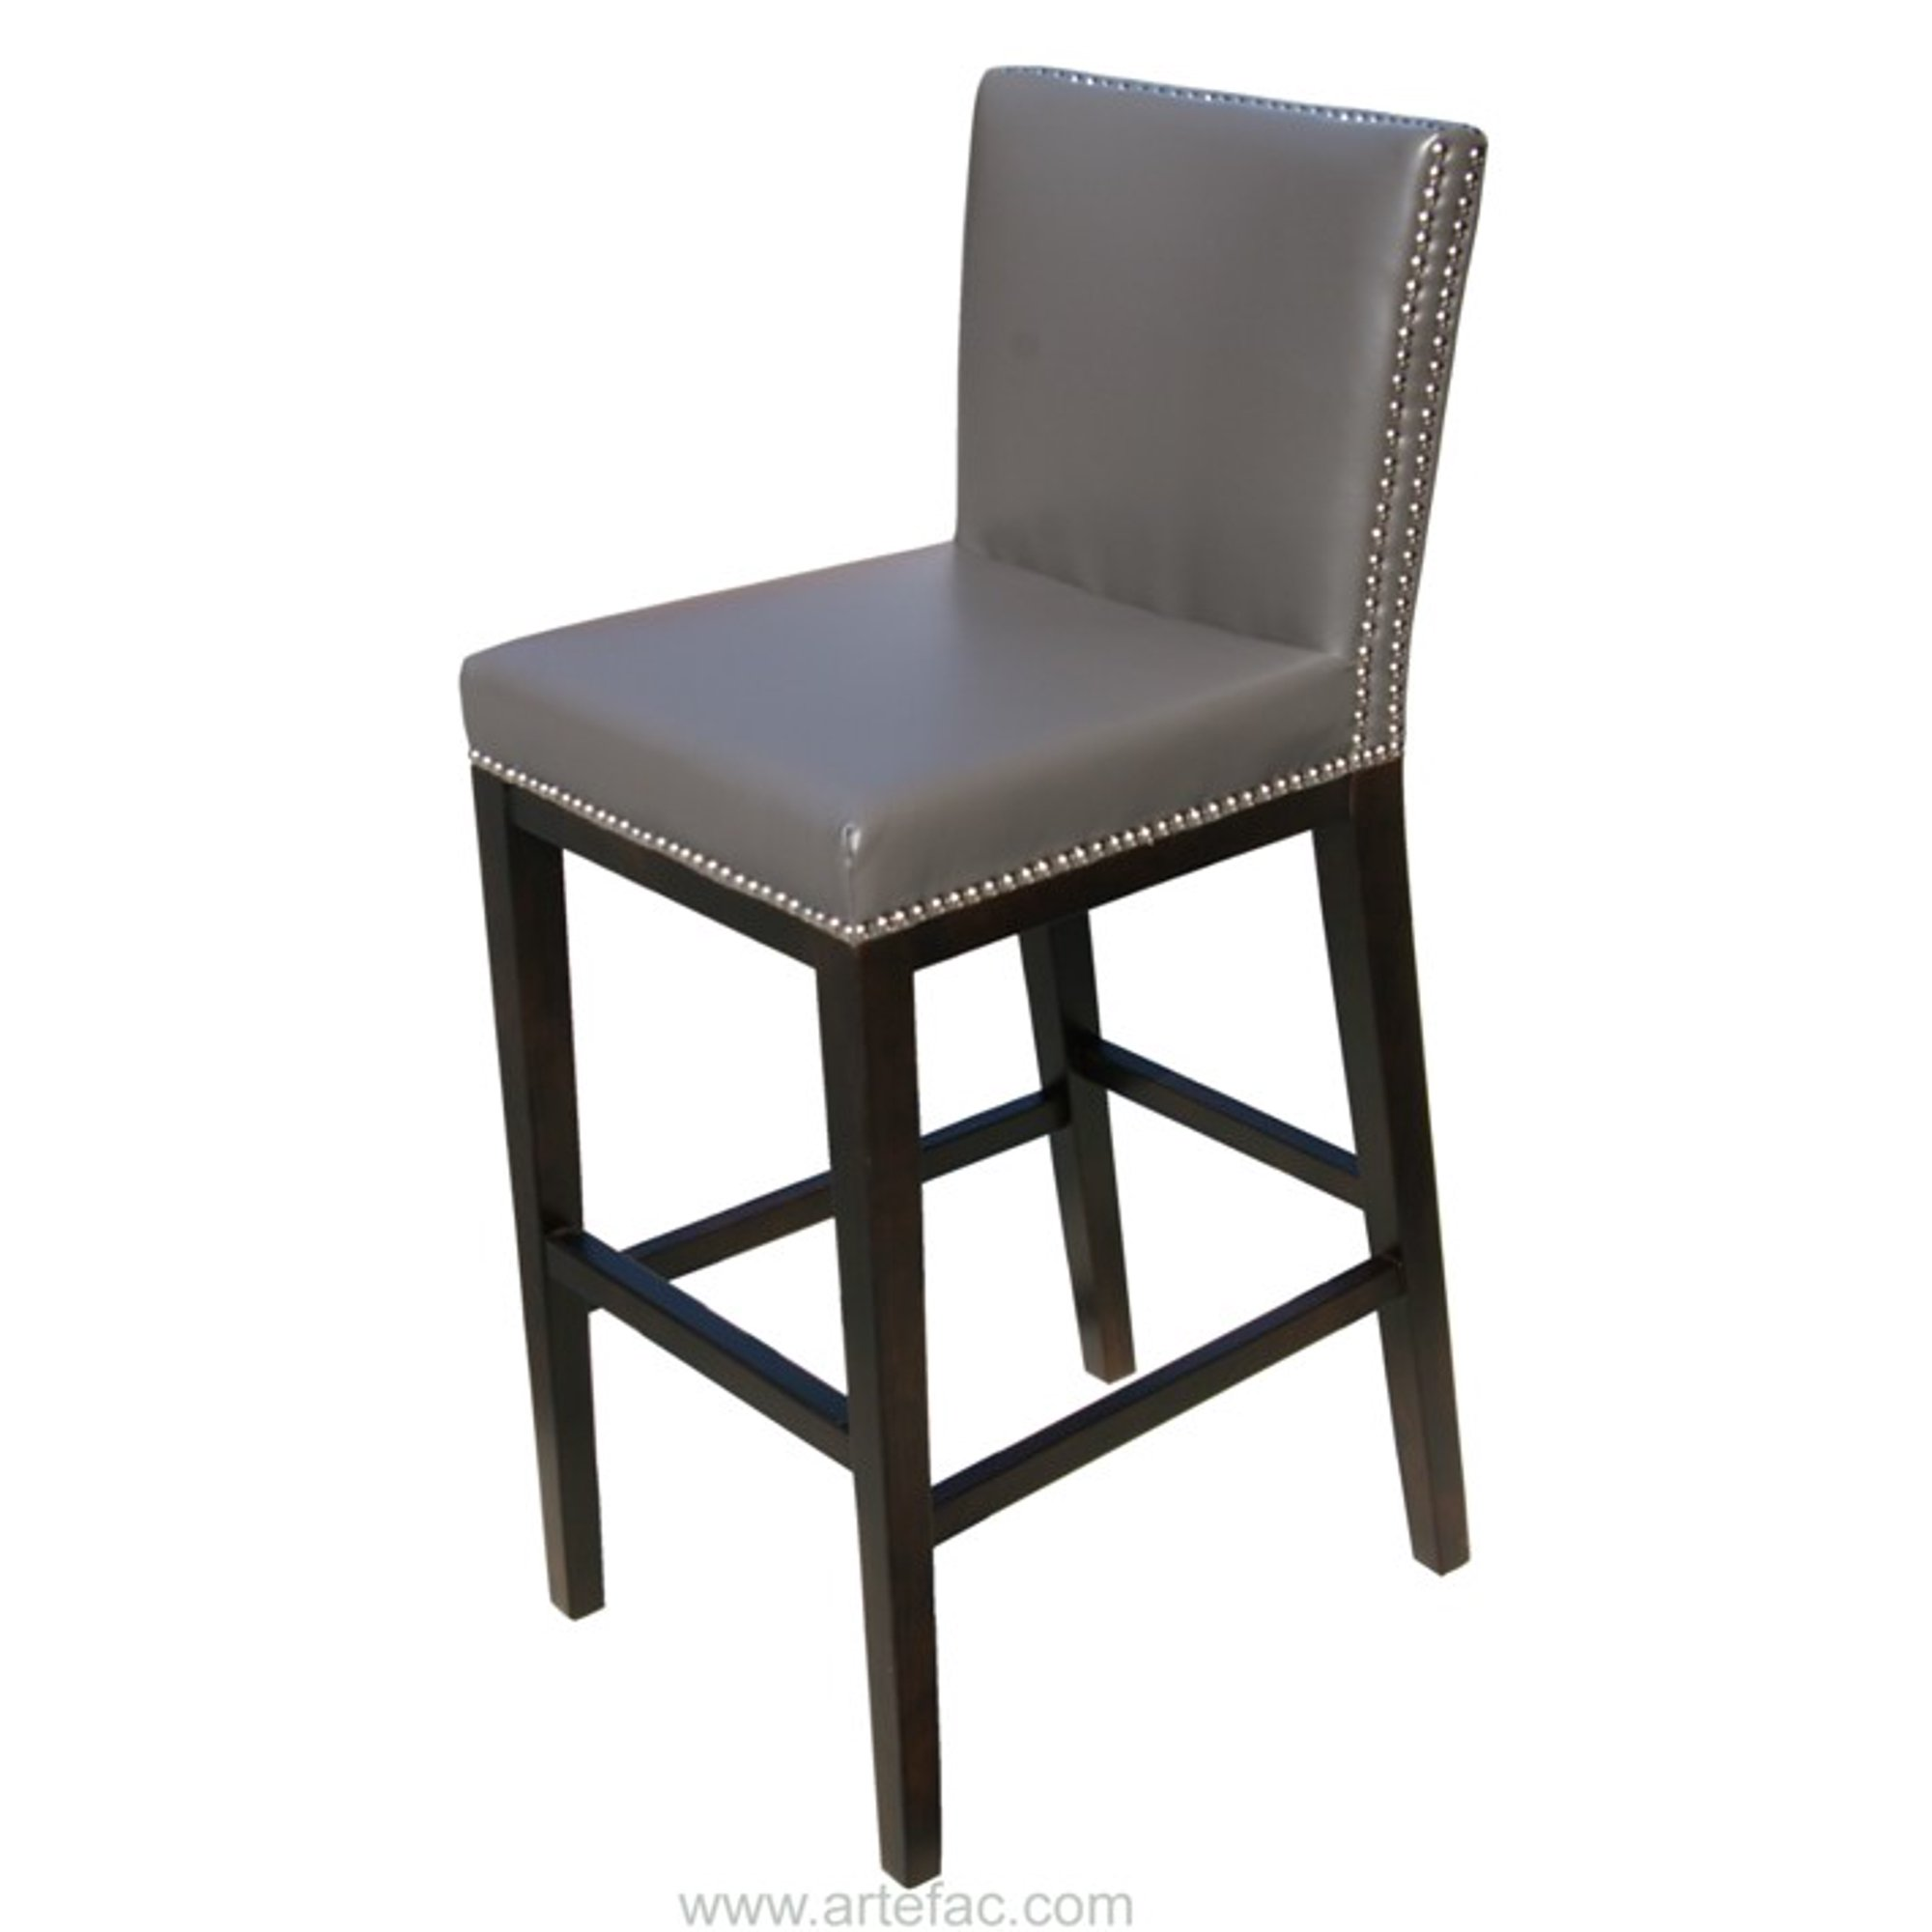 Superb Artefac Pembley Leather Stool With Nailhead Trim Gray Onthecornerstone Fun Painted Chair Ideas Images Onthecornerstoneorg